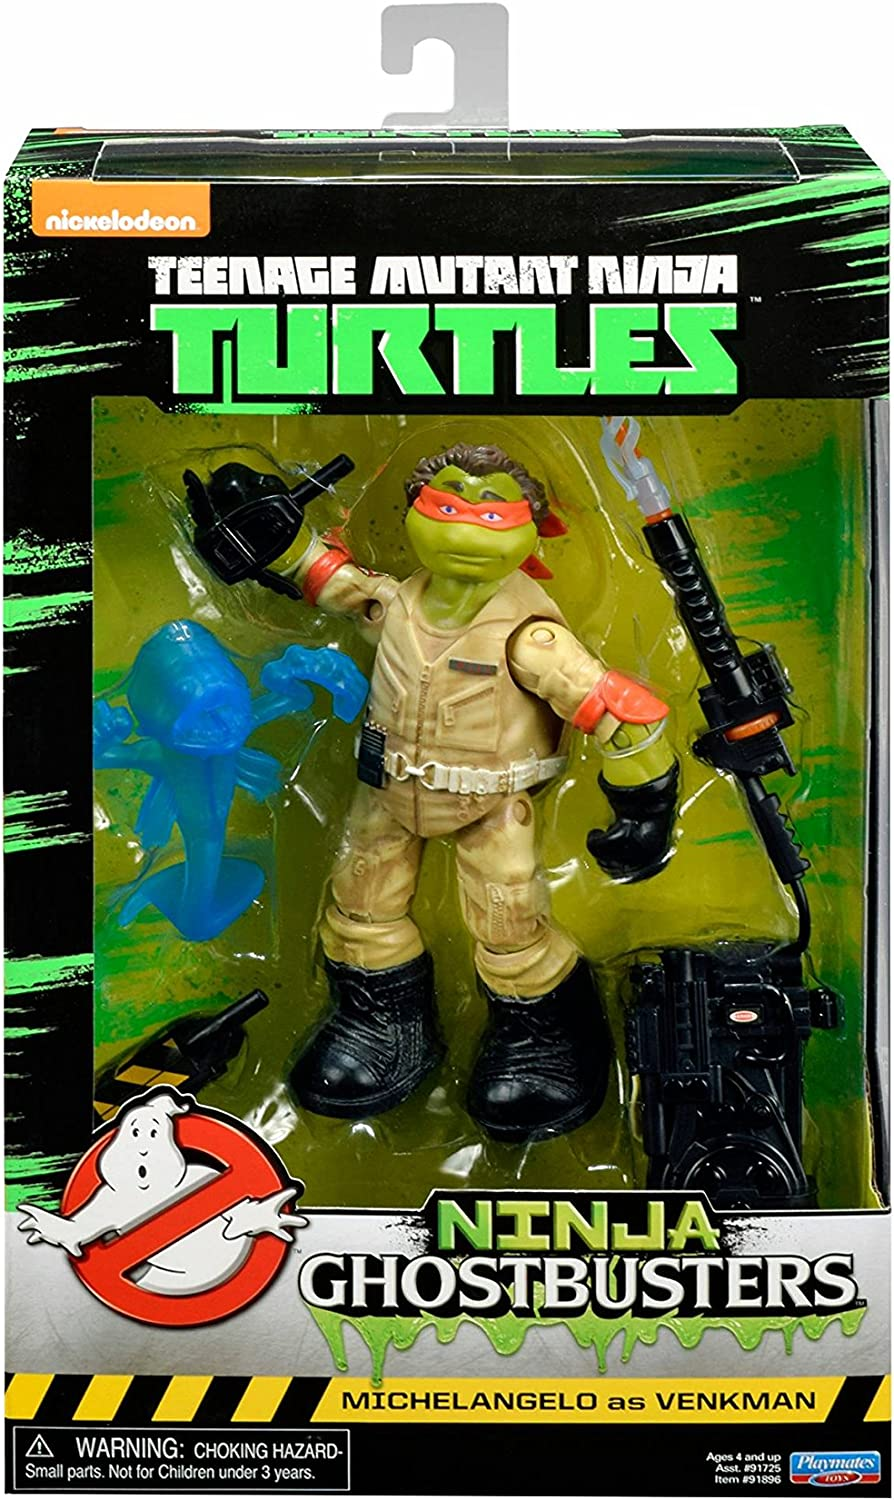 Playmates Toys Ninja Ghostbusters Teenage Mutant Ninja Turtles TMNT Michelangelo as Venkman